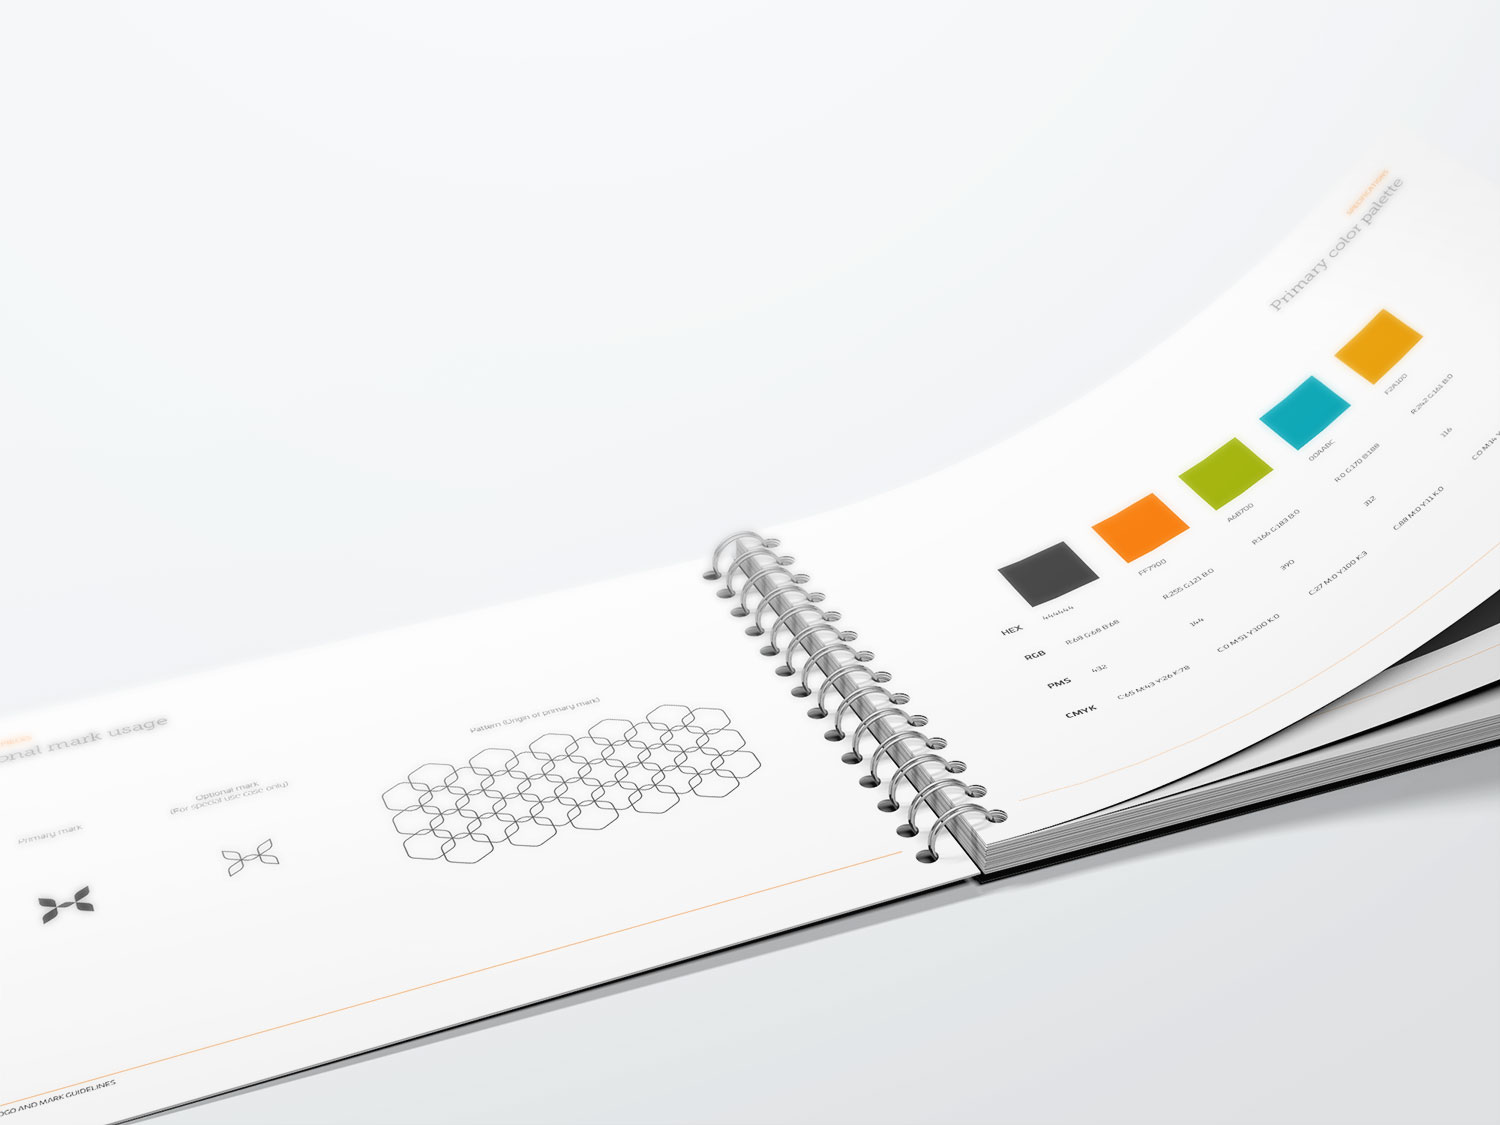 A HaptX book that has been opened to a page showing color blocks.